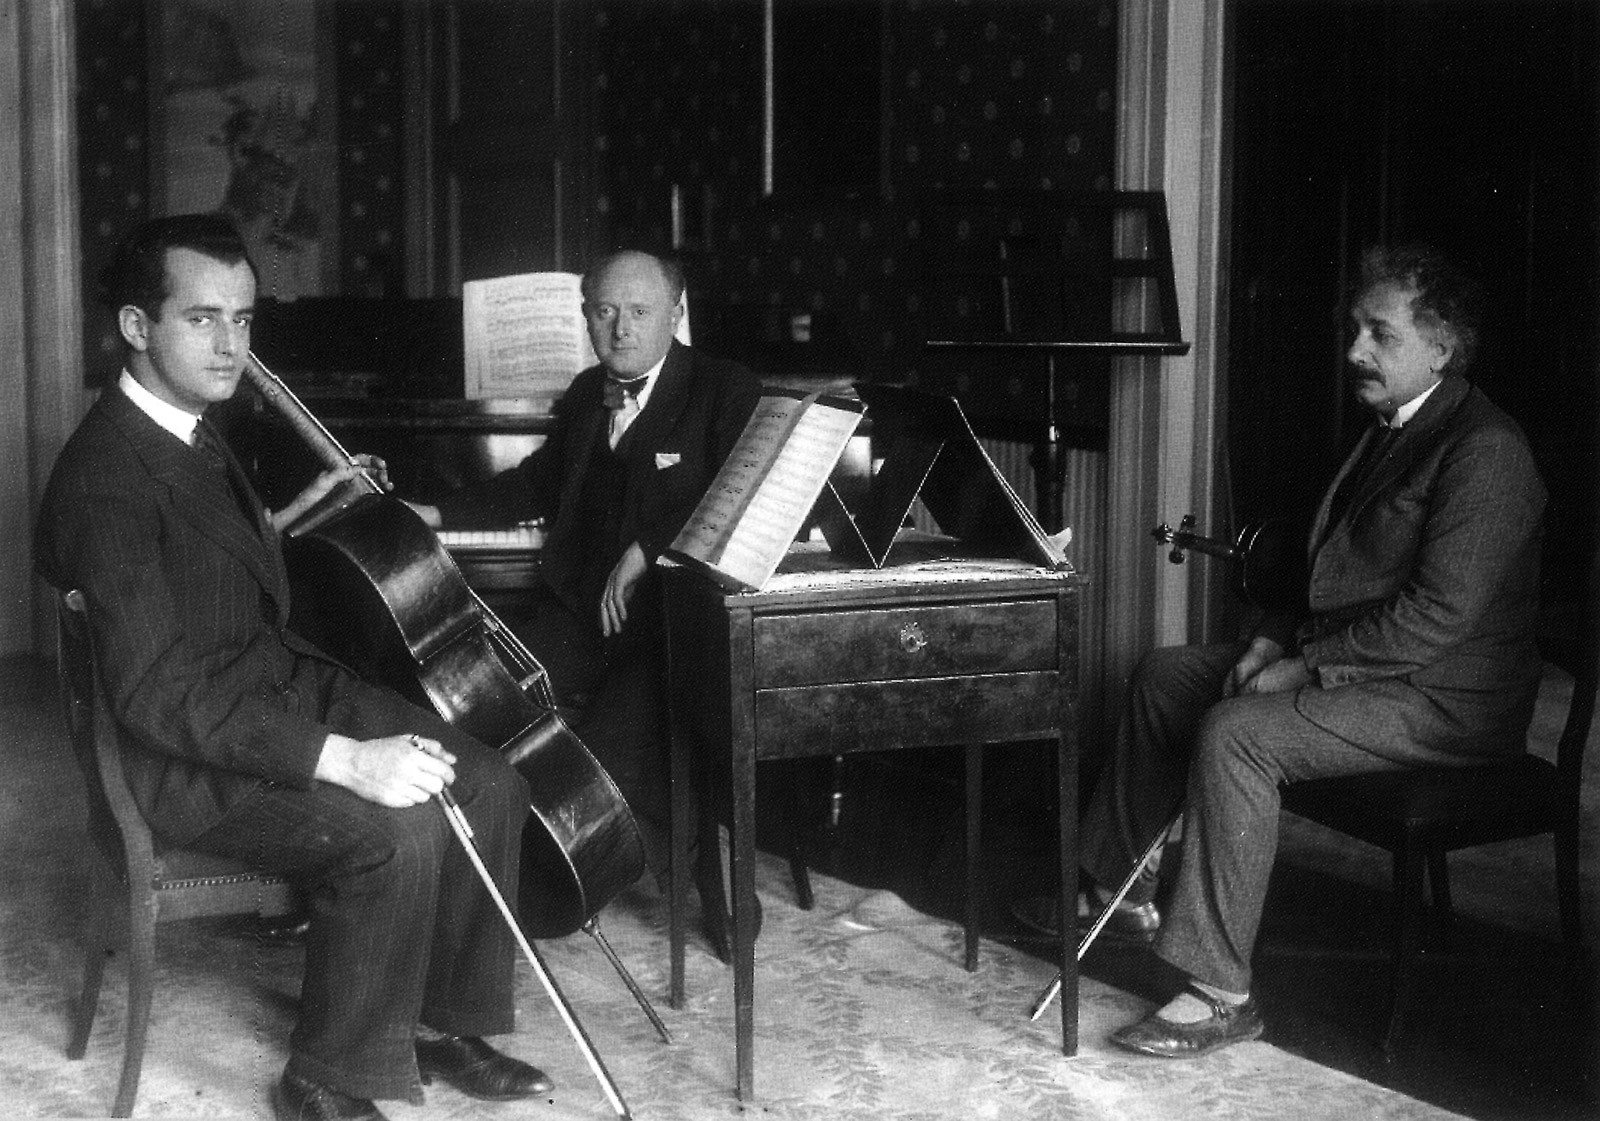 While Francesco von Mendelssohn was trying to make his mark as a professional cellist, Albert Einstein was known to be a dilettante – albeit of debatable talent – on the violin.  They are shown here playing together in the physicist's flat in Berlin © bpk / Bayrische Staatsbibliothek / Archiv Heinrich Hoffmann.